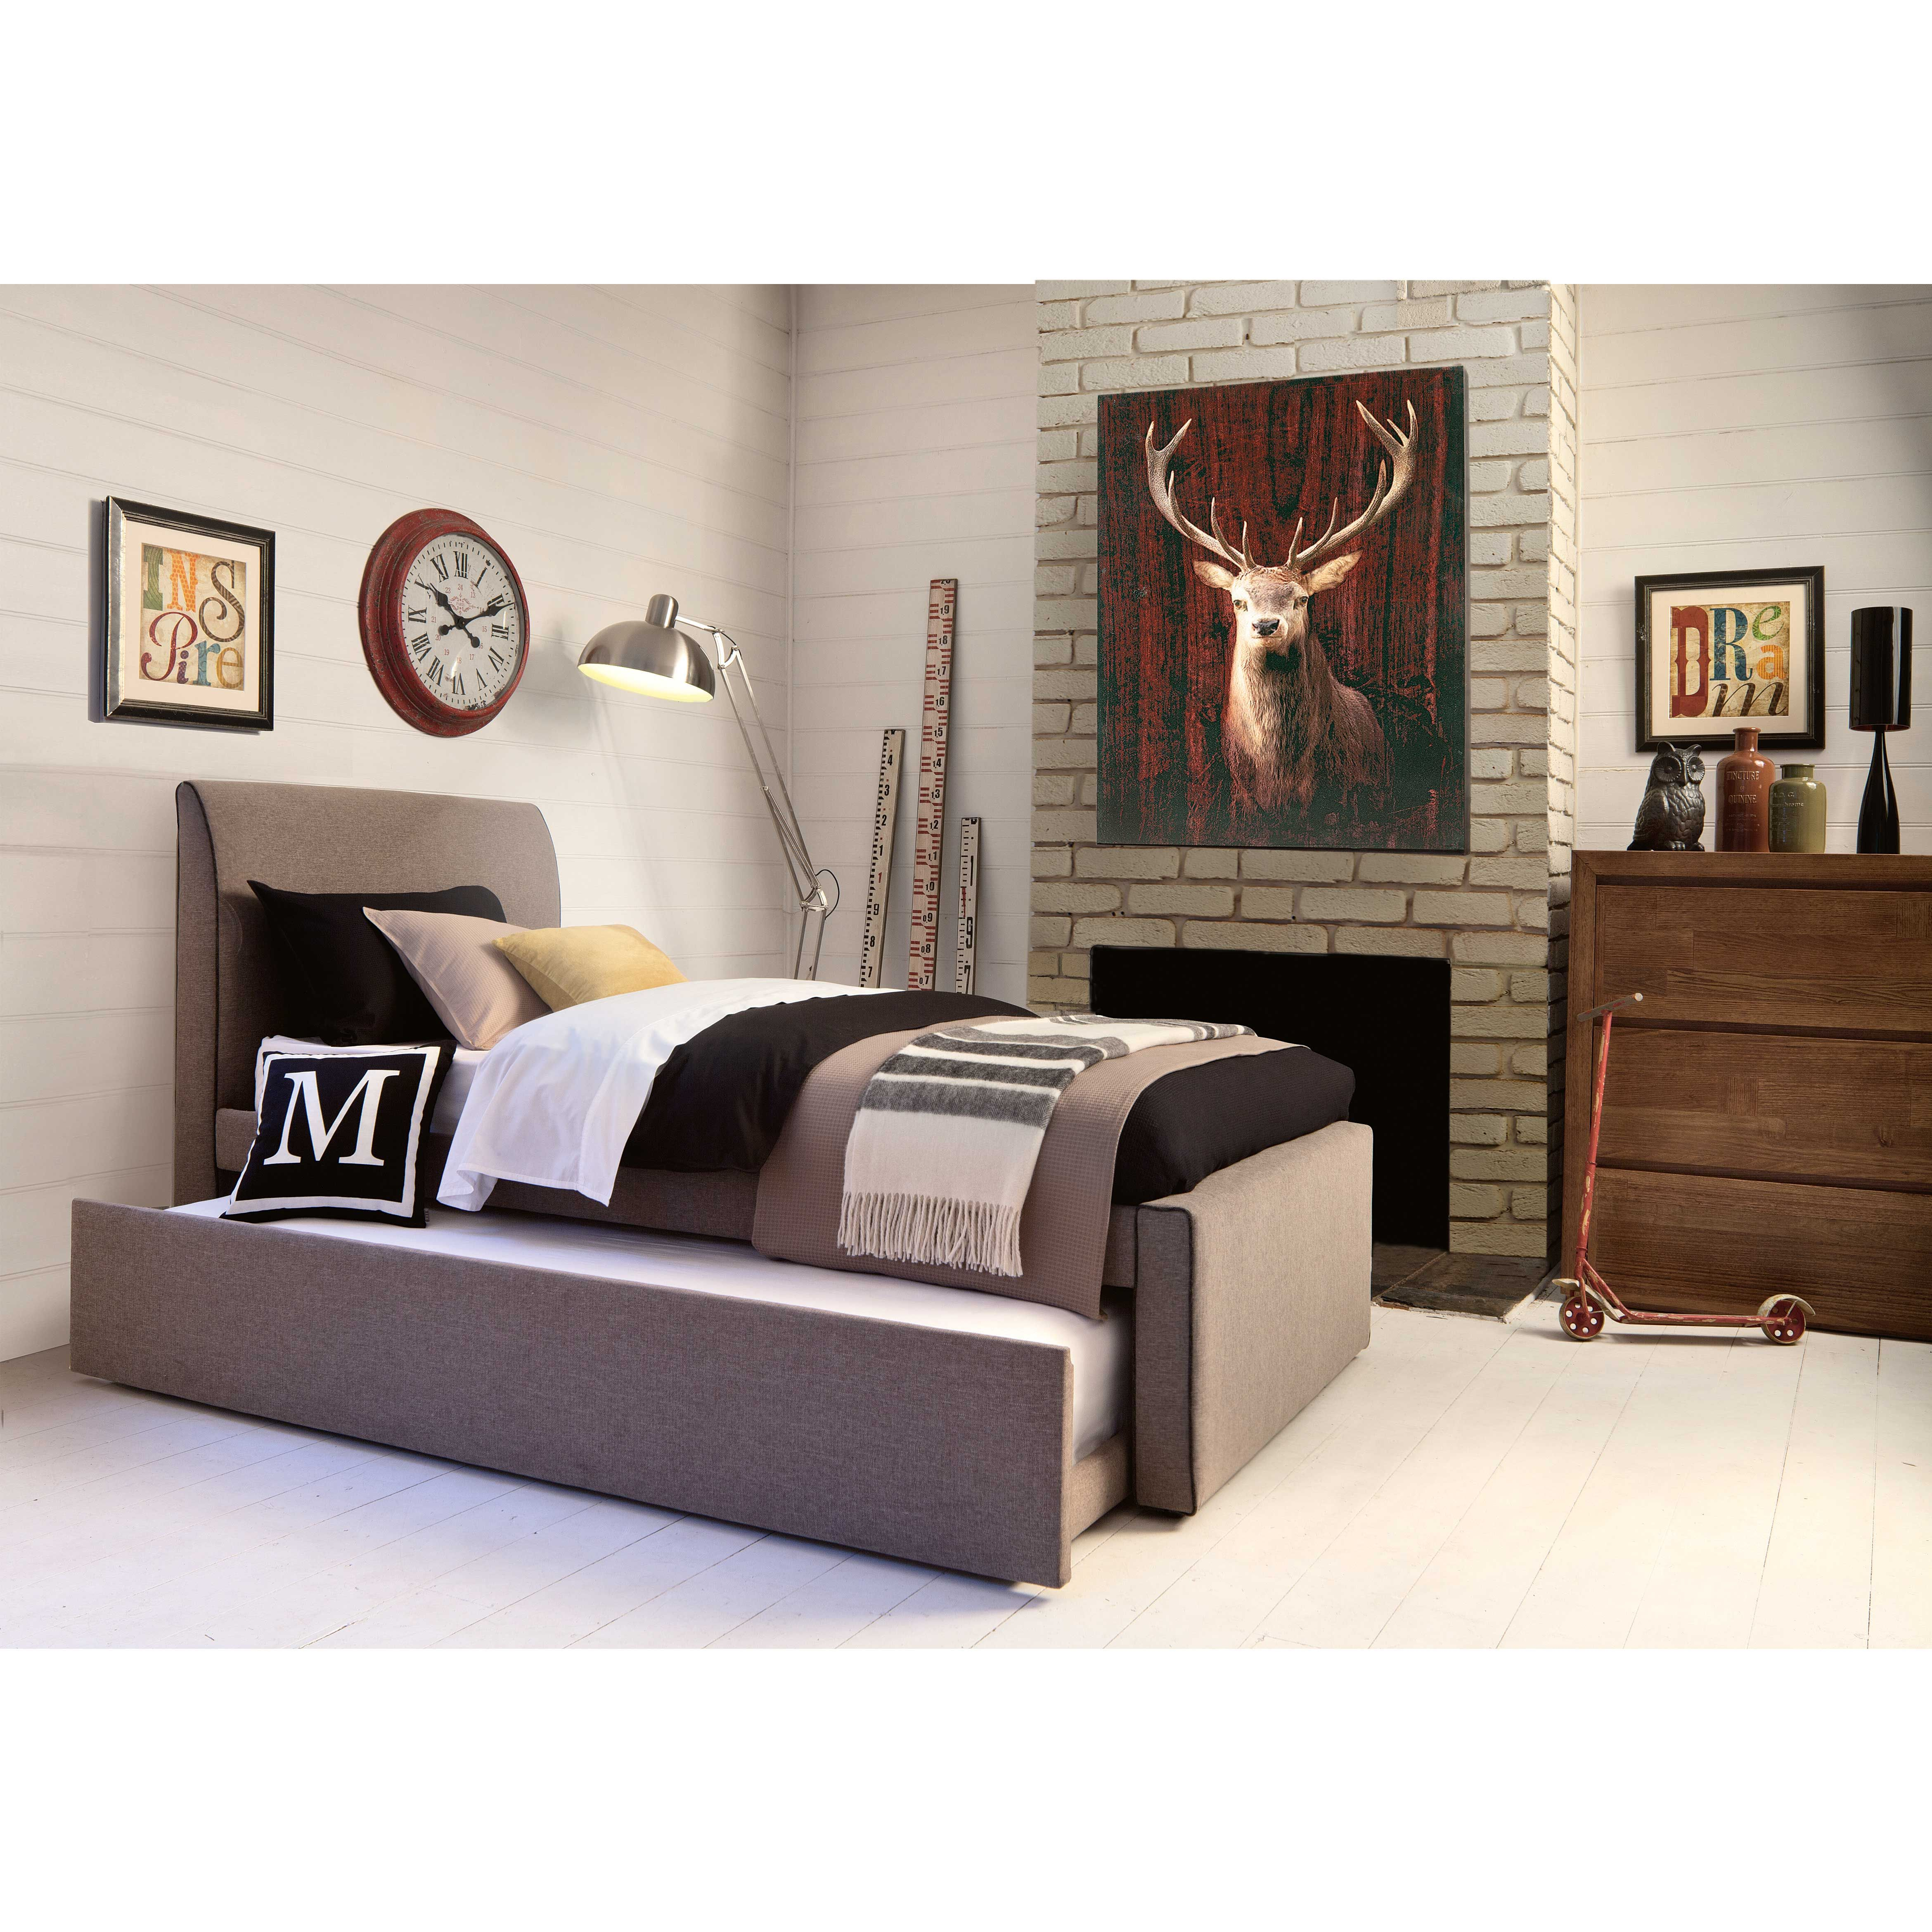 Kids Bedroom Furniture Stores: $1199 Bedroom :: Kids Bedroom :: Kids Beds :: Hunter